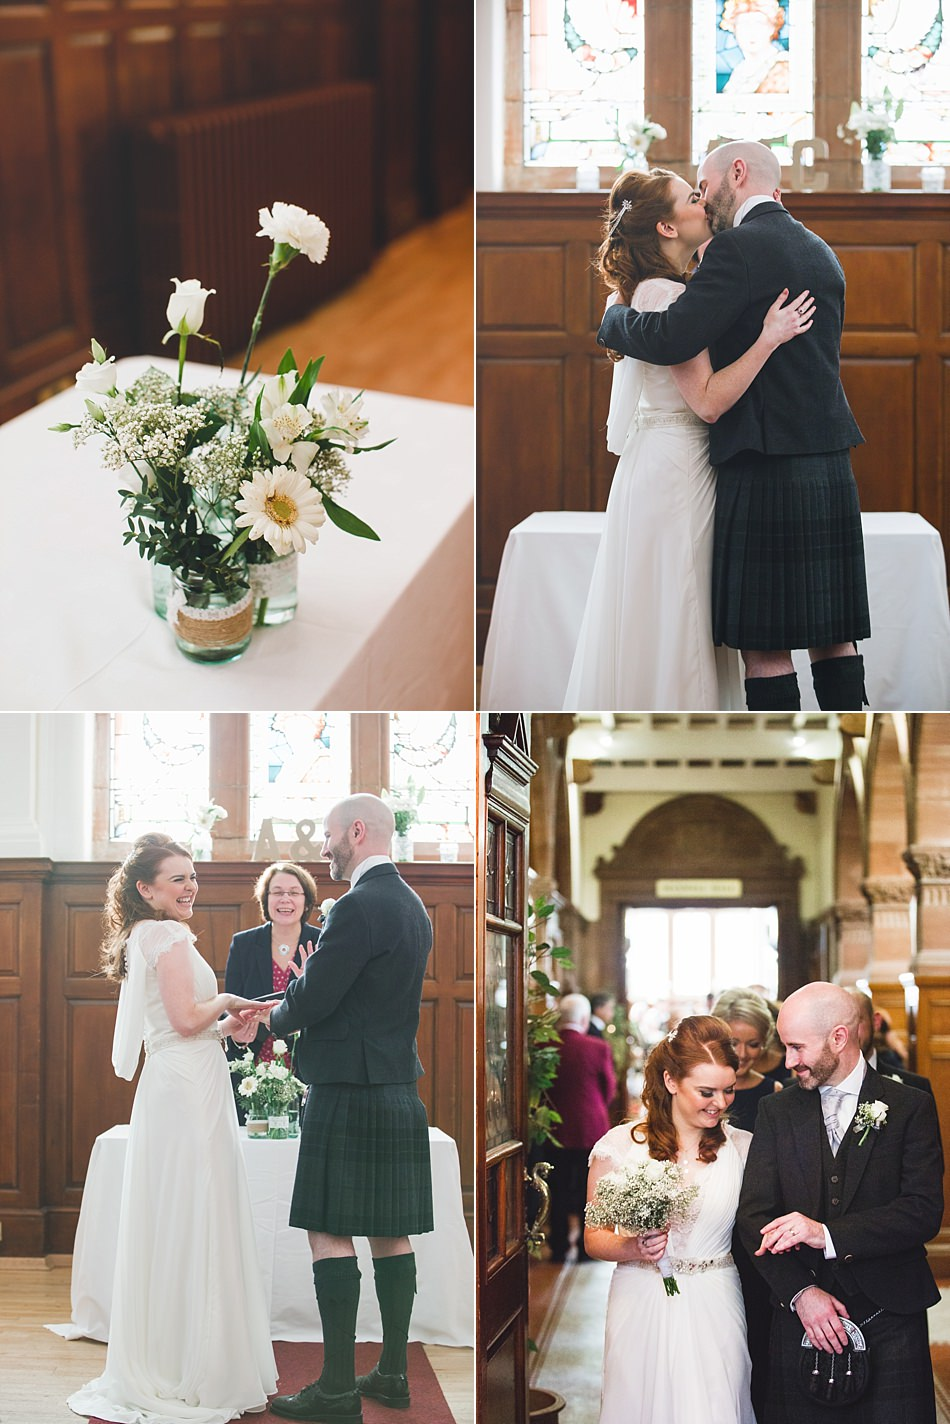 wedding pollokshields burgh halls glasgow 5-9.jpg